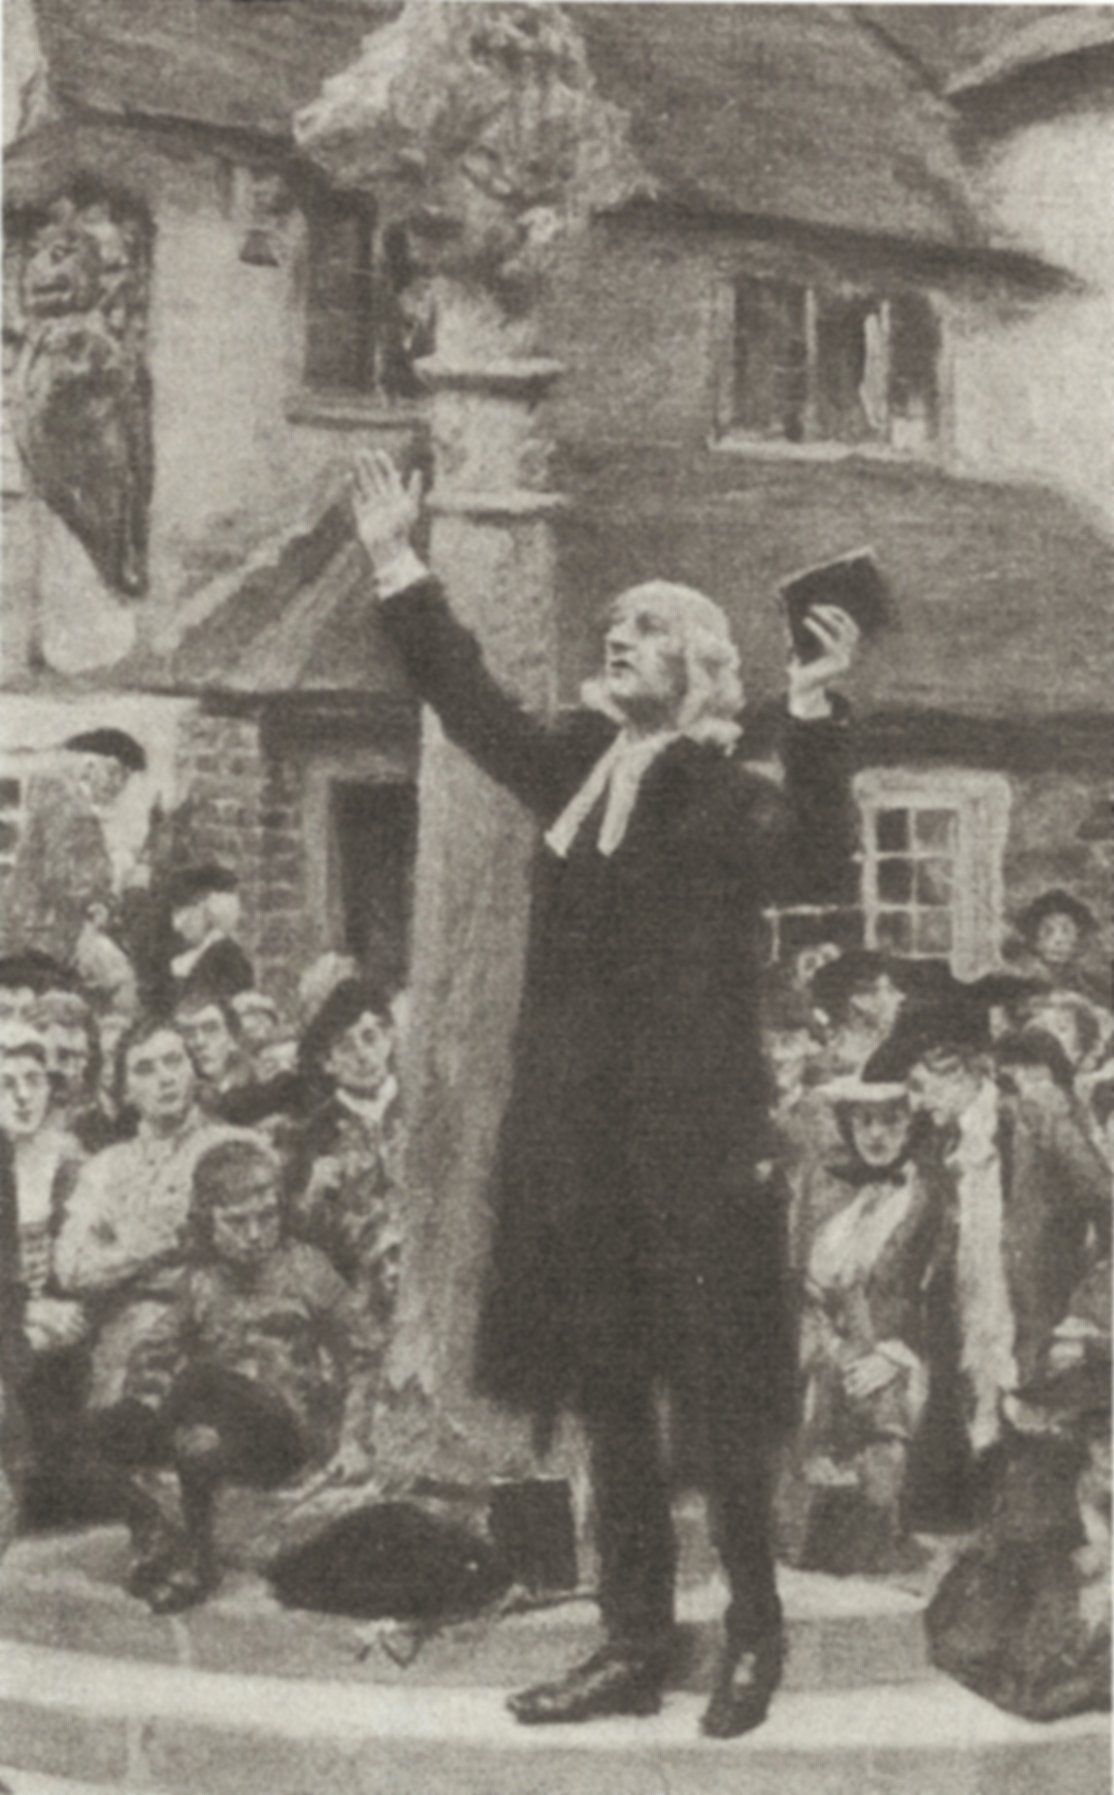 History (With images) John wesley, Christian life, Methodism